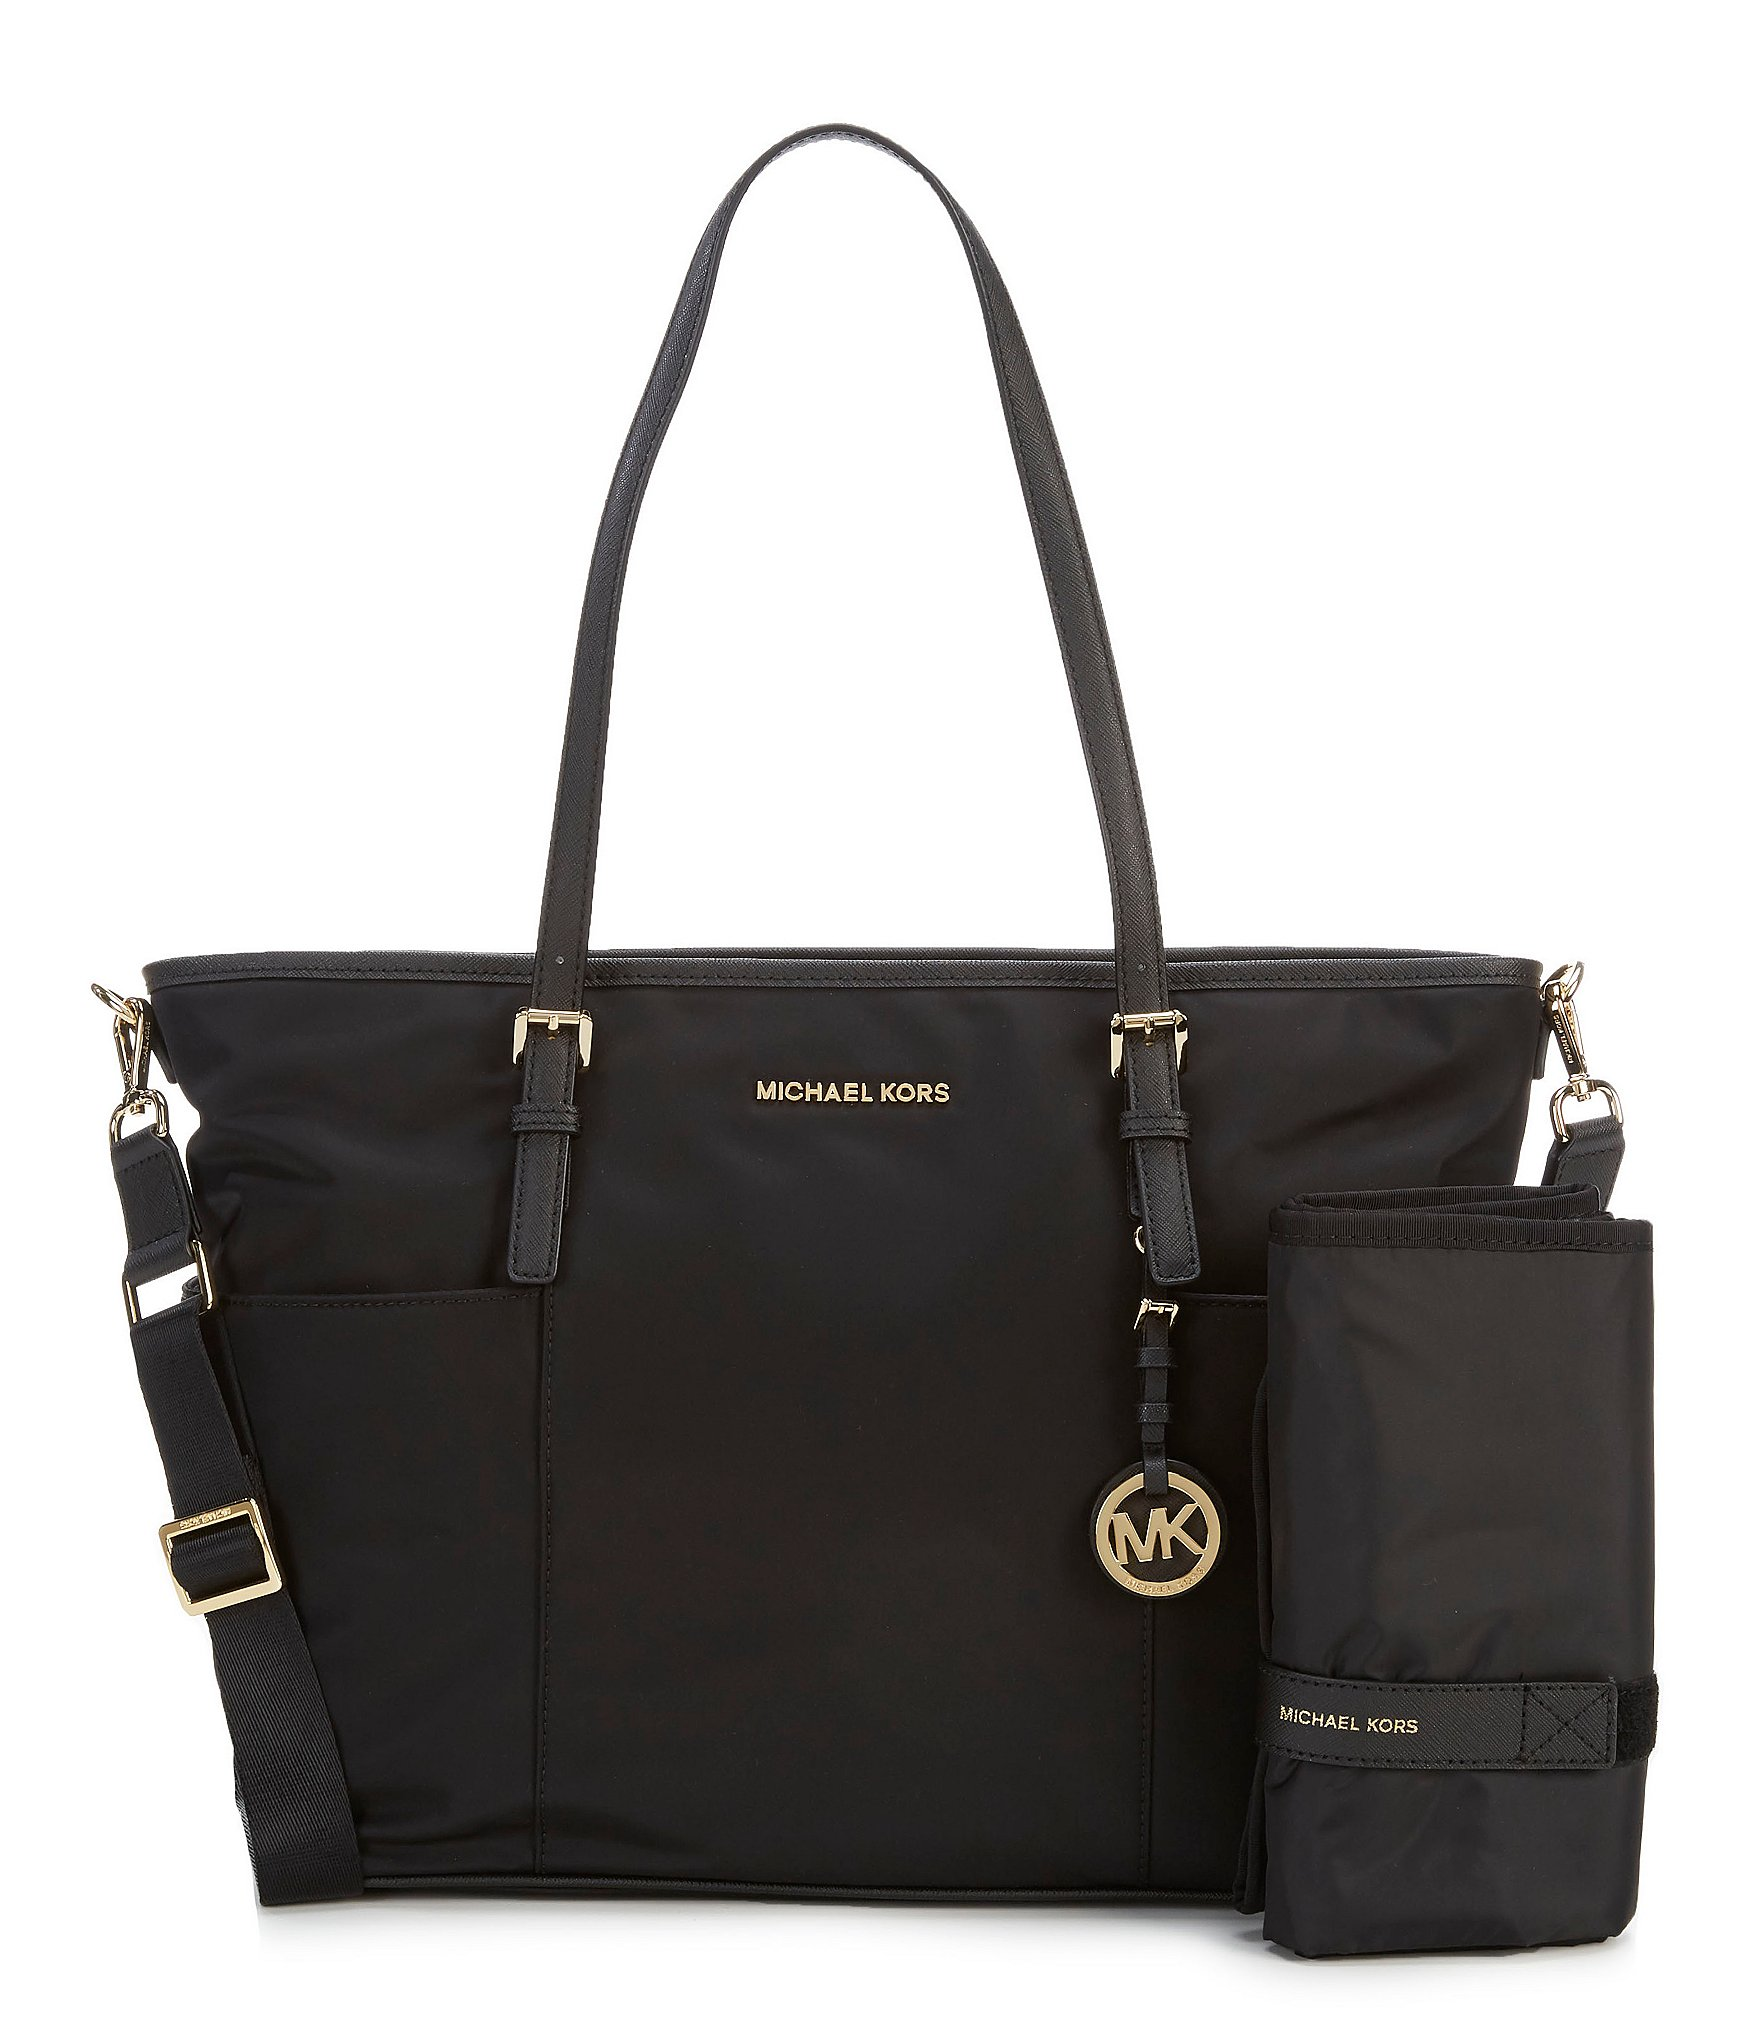 Get the best deals on dillards michael kors handbags and save up to 70% off at Poshmark now! Whatever you're shopping for, we've got it.